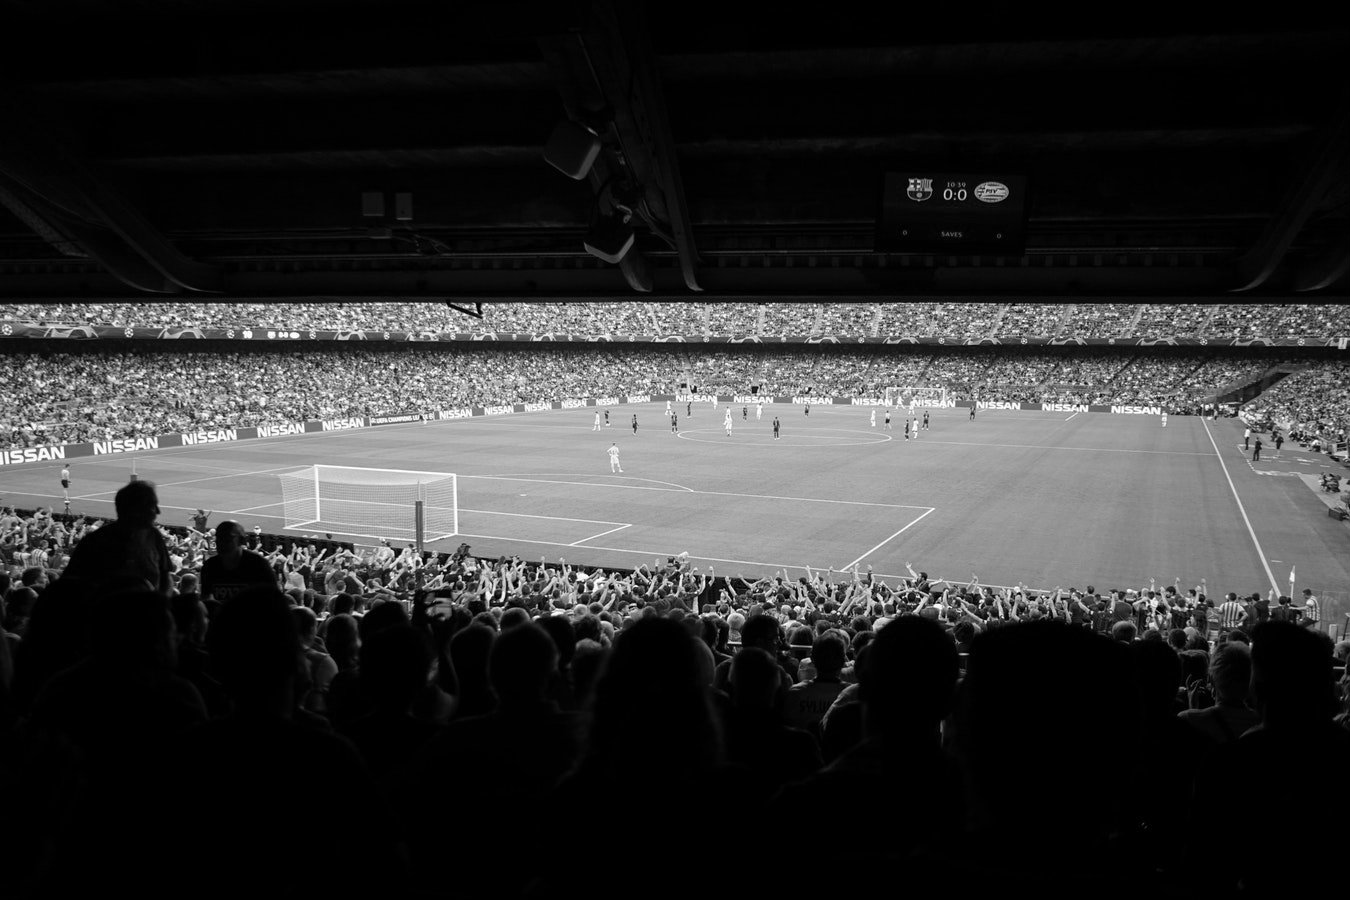 Football Match Soundscape- Royalty Free And Free To Download